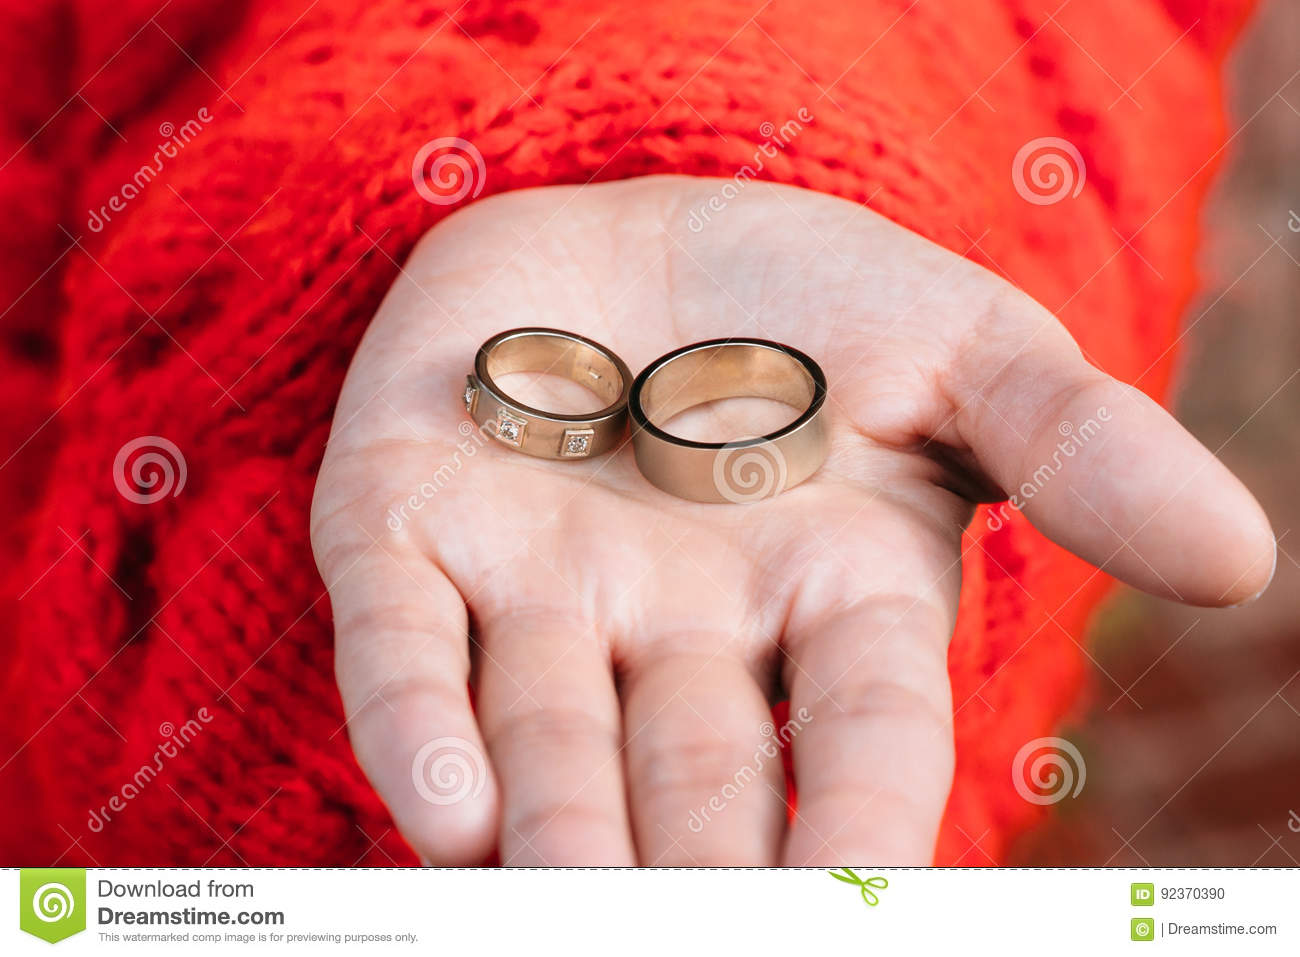 Two Wedding Rings In A Hand Of The Bride Stock Photo - Image of ...